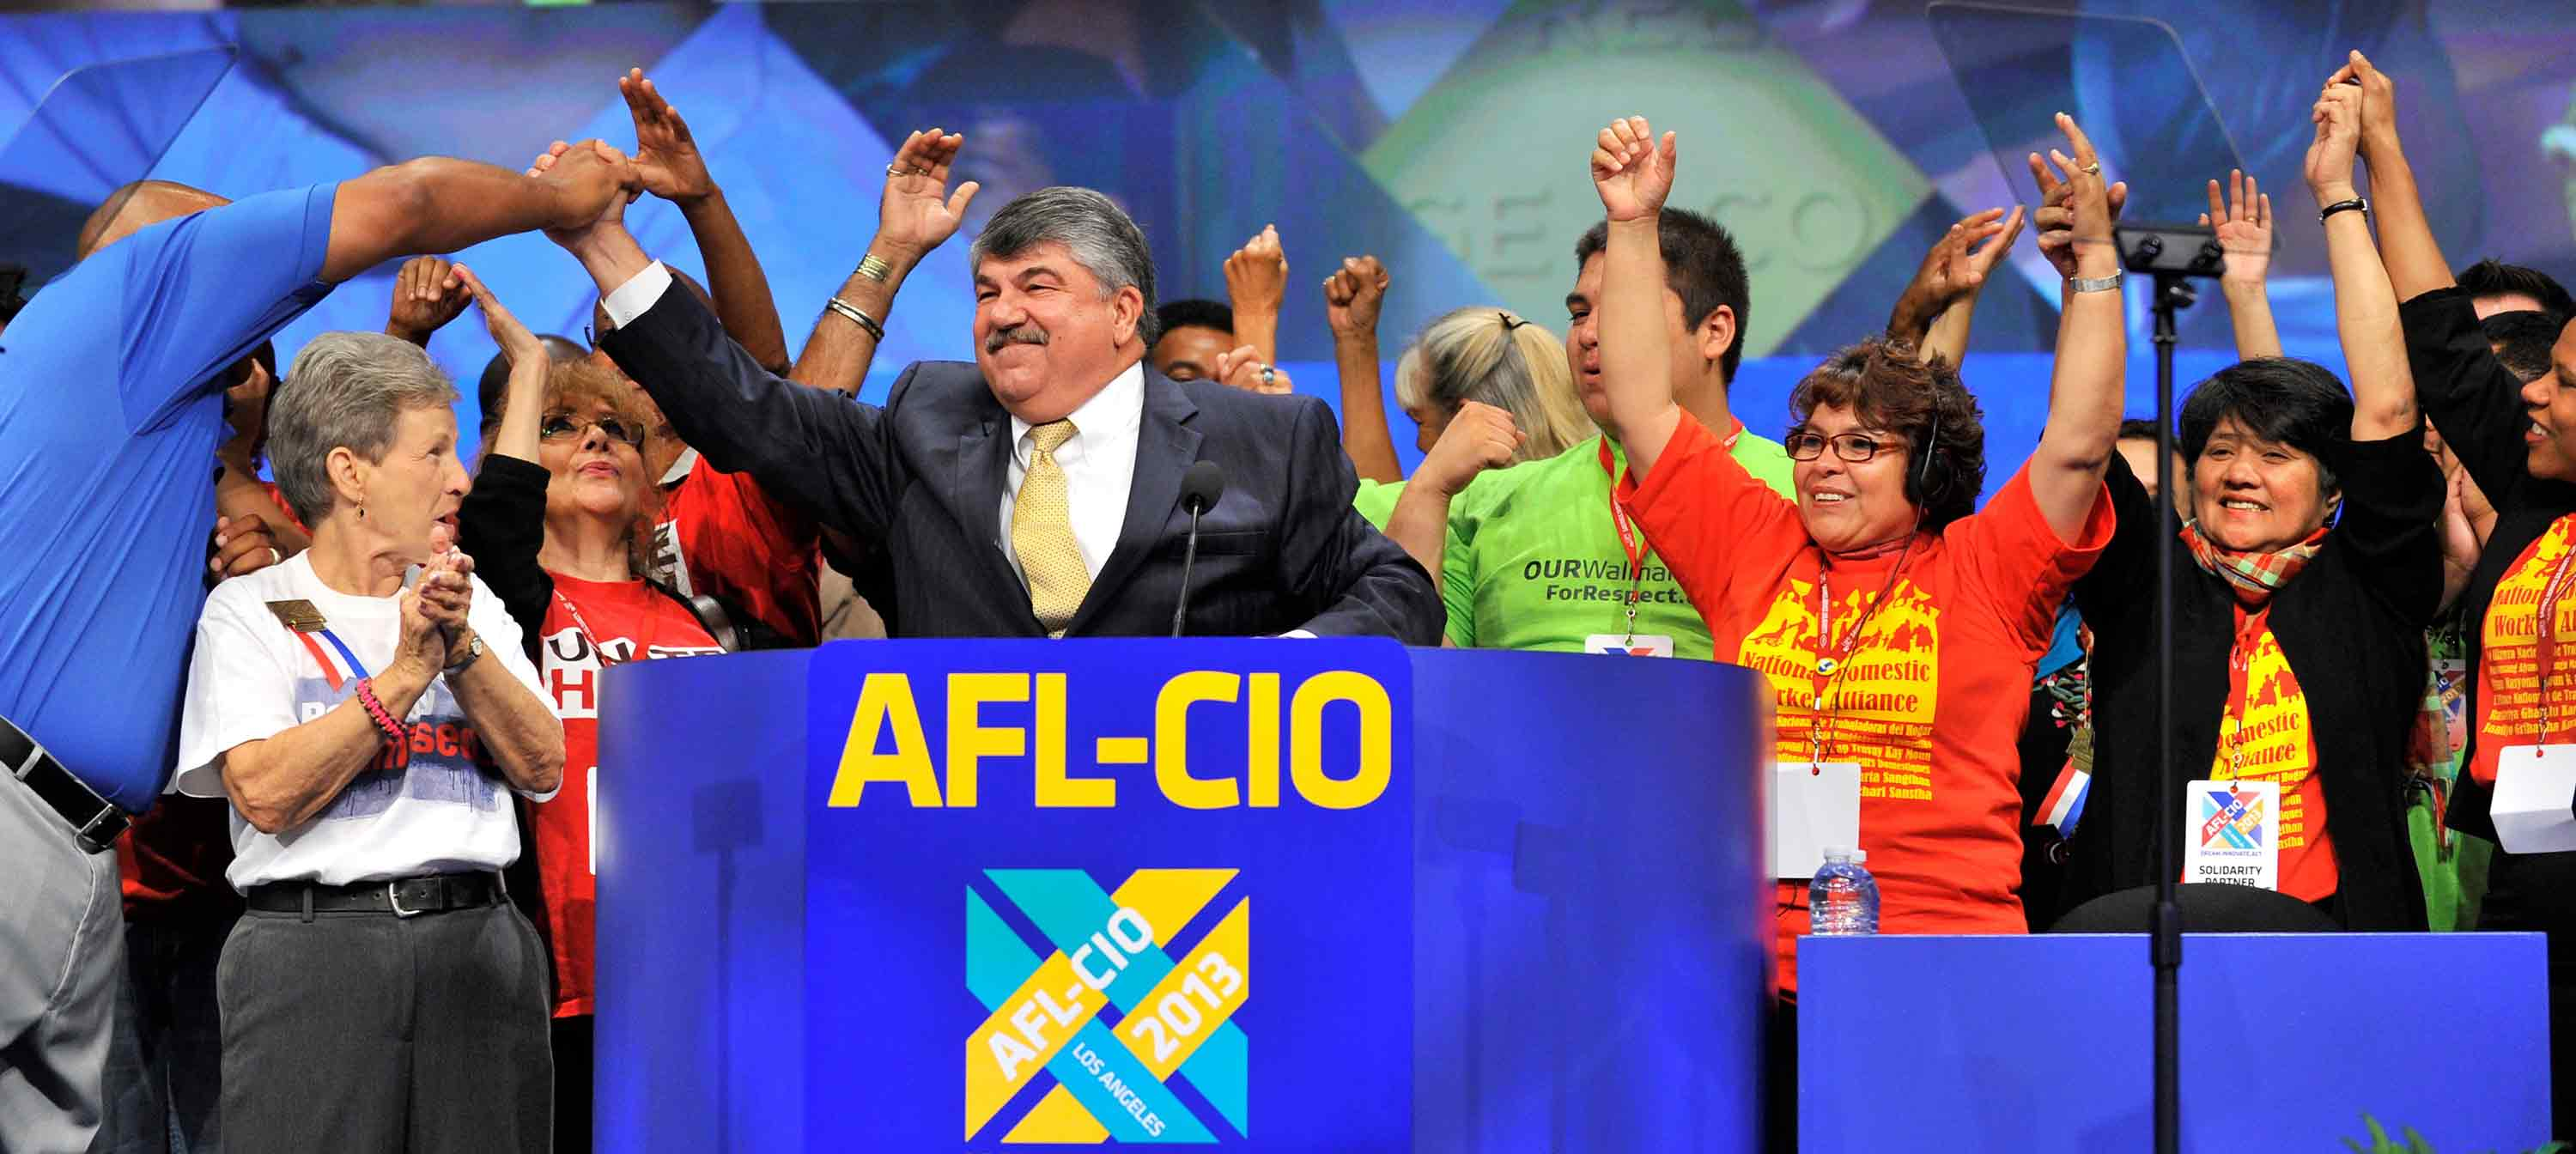 AFL-CIO President Richard L. Trumka and Union Members on the 2013 Convention Stage